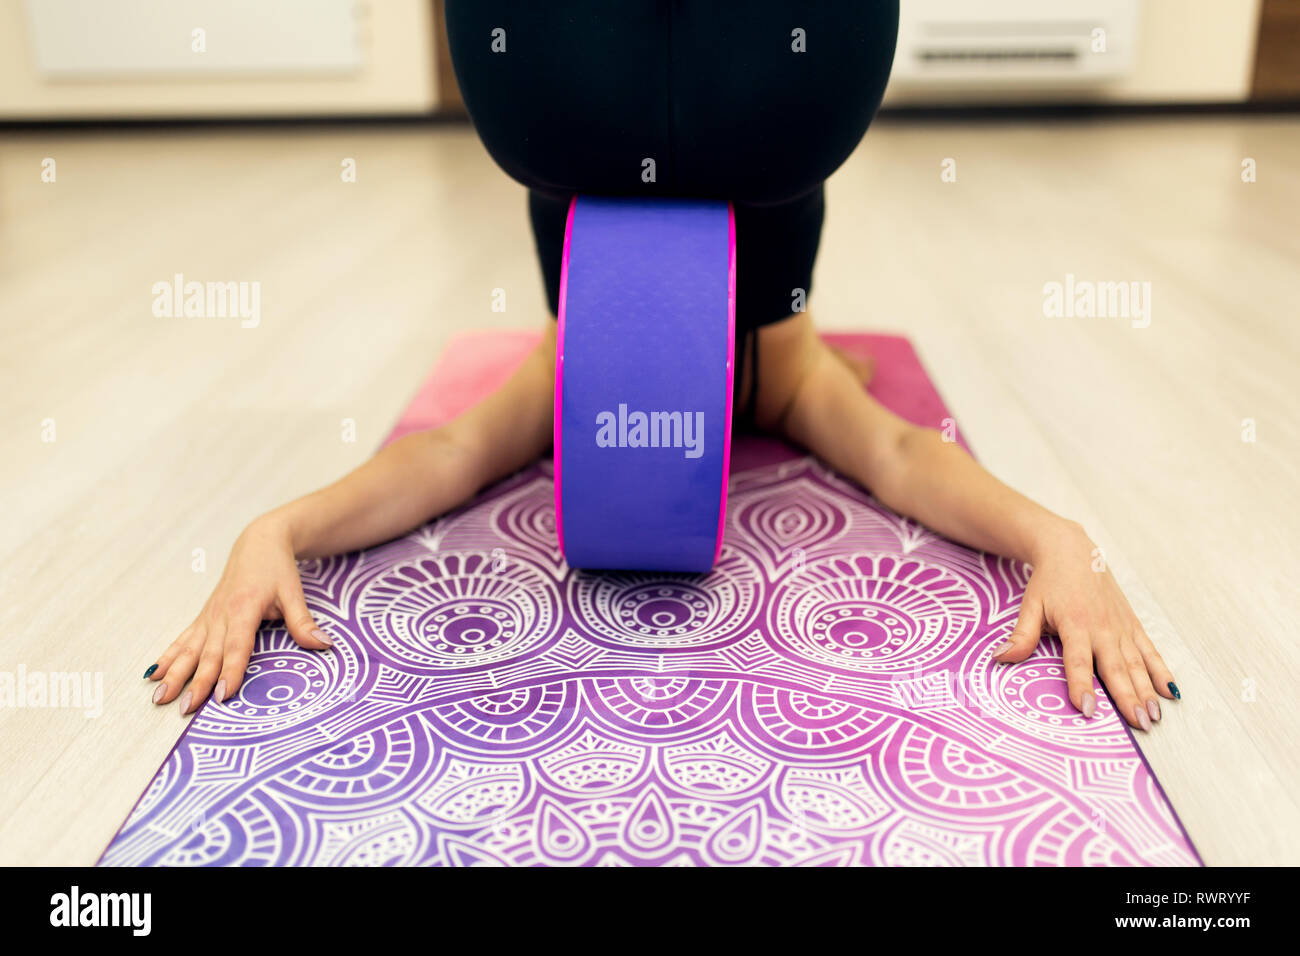 young woman in a sportswear yoga exercises with a yoga wheel in the gym. Stretching and wellness lifestyle. - Stock Image